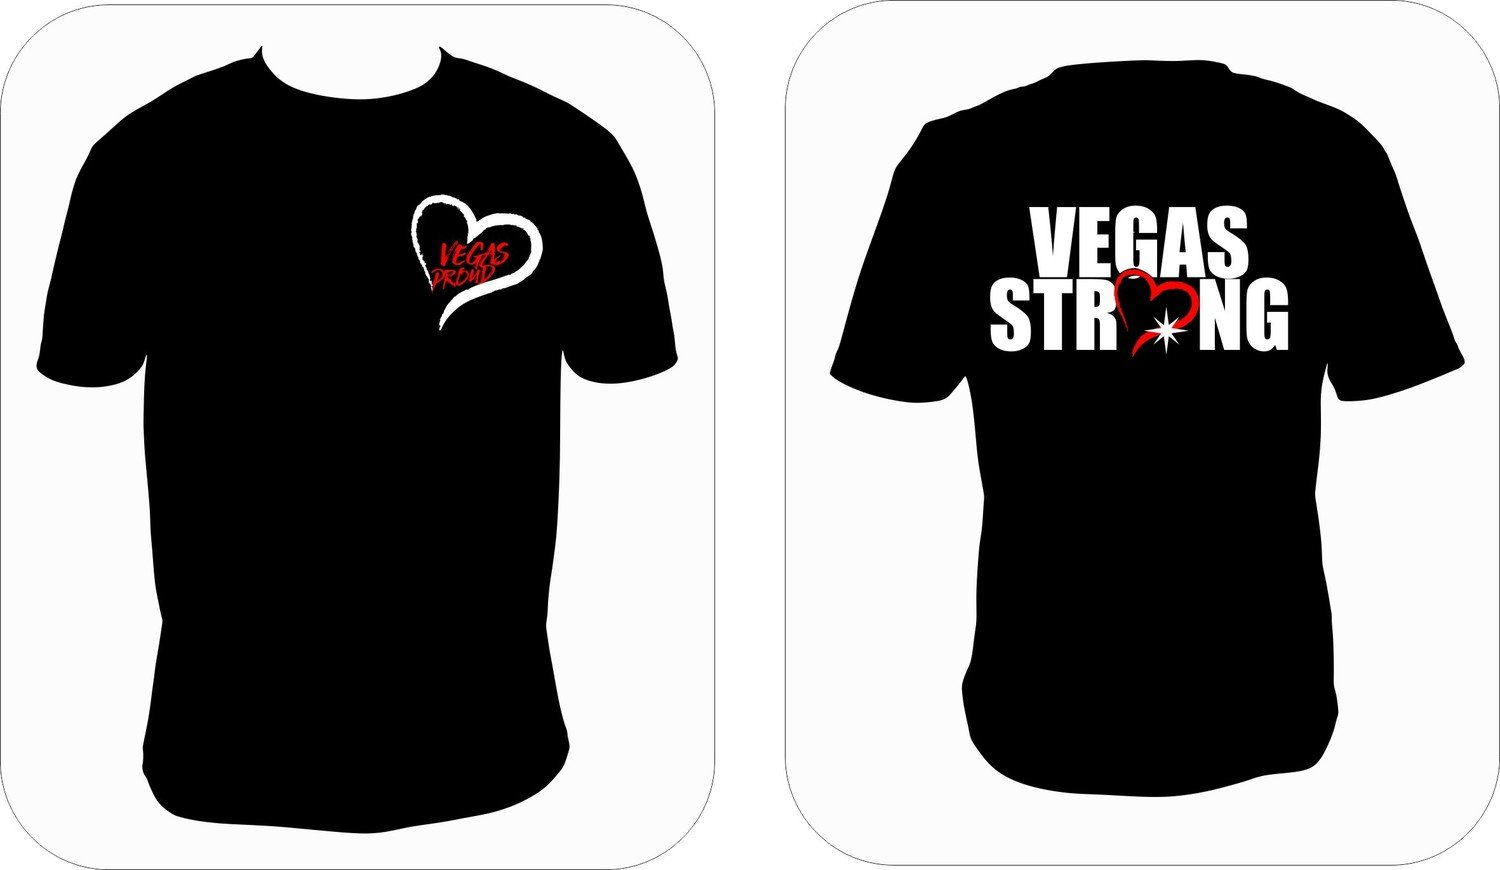 'Vegas Proud - Vegas Strong Shirt'